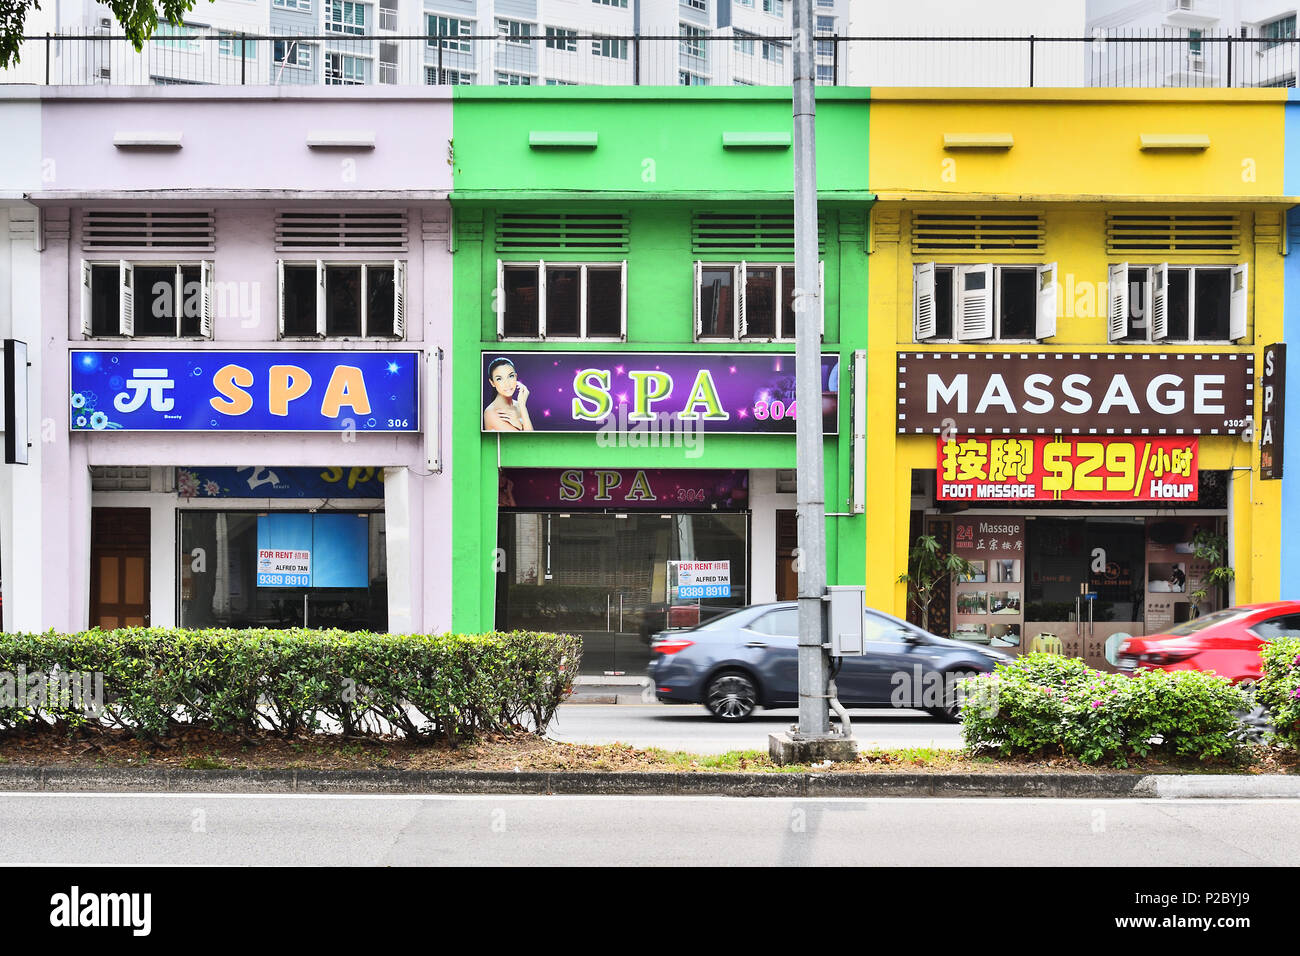 Singapore. Along the intersection of Serangoon Road and Lavender Street. A row of spas and massage palours. - Stock Image